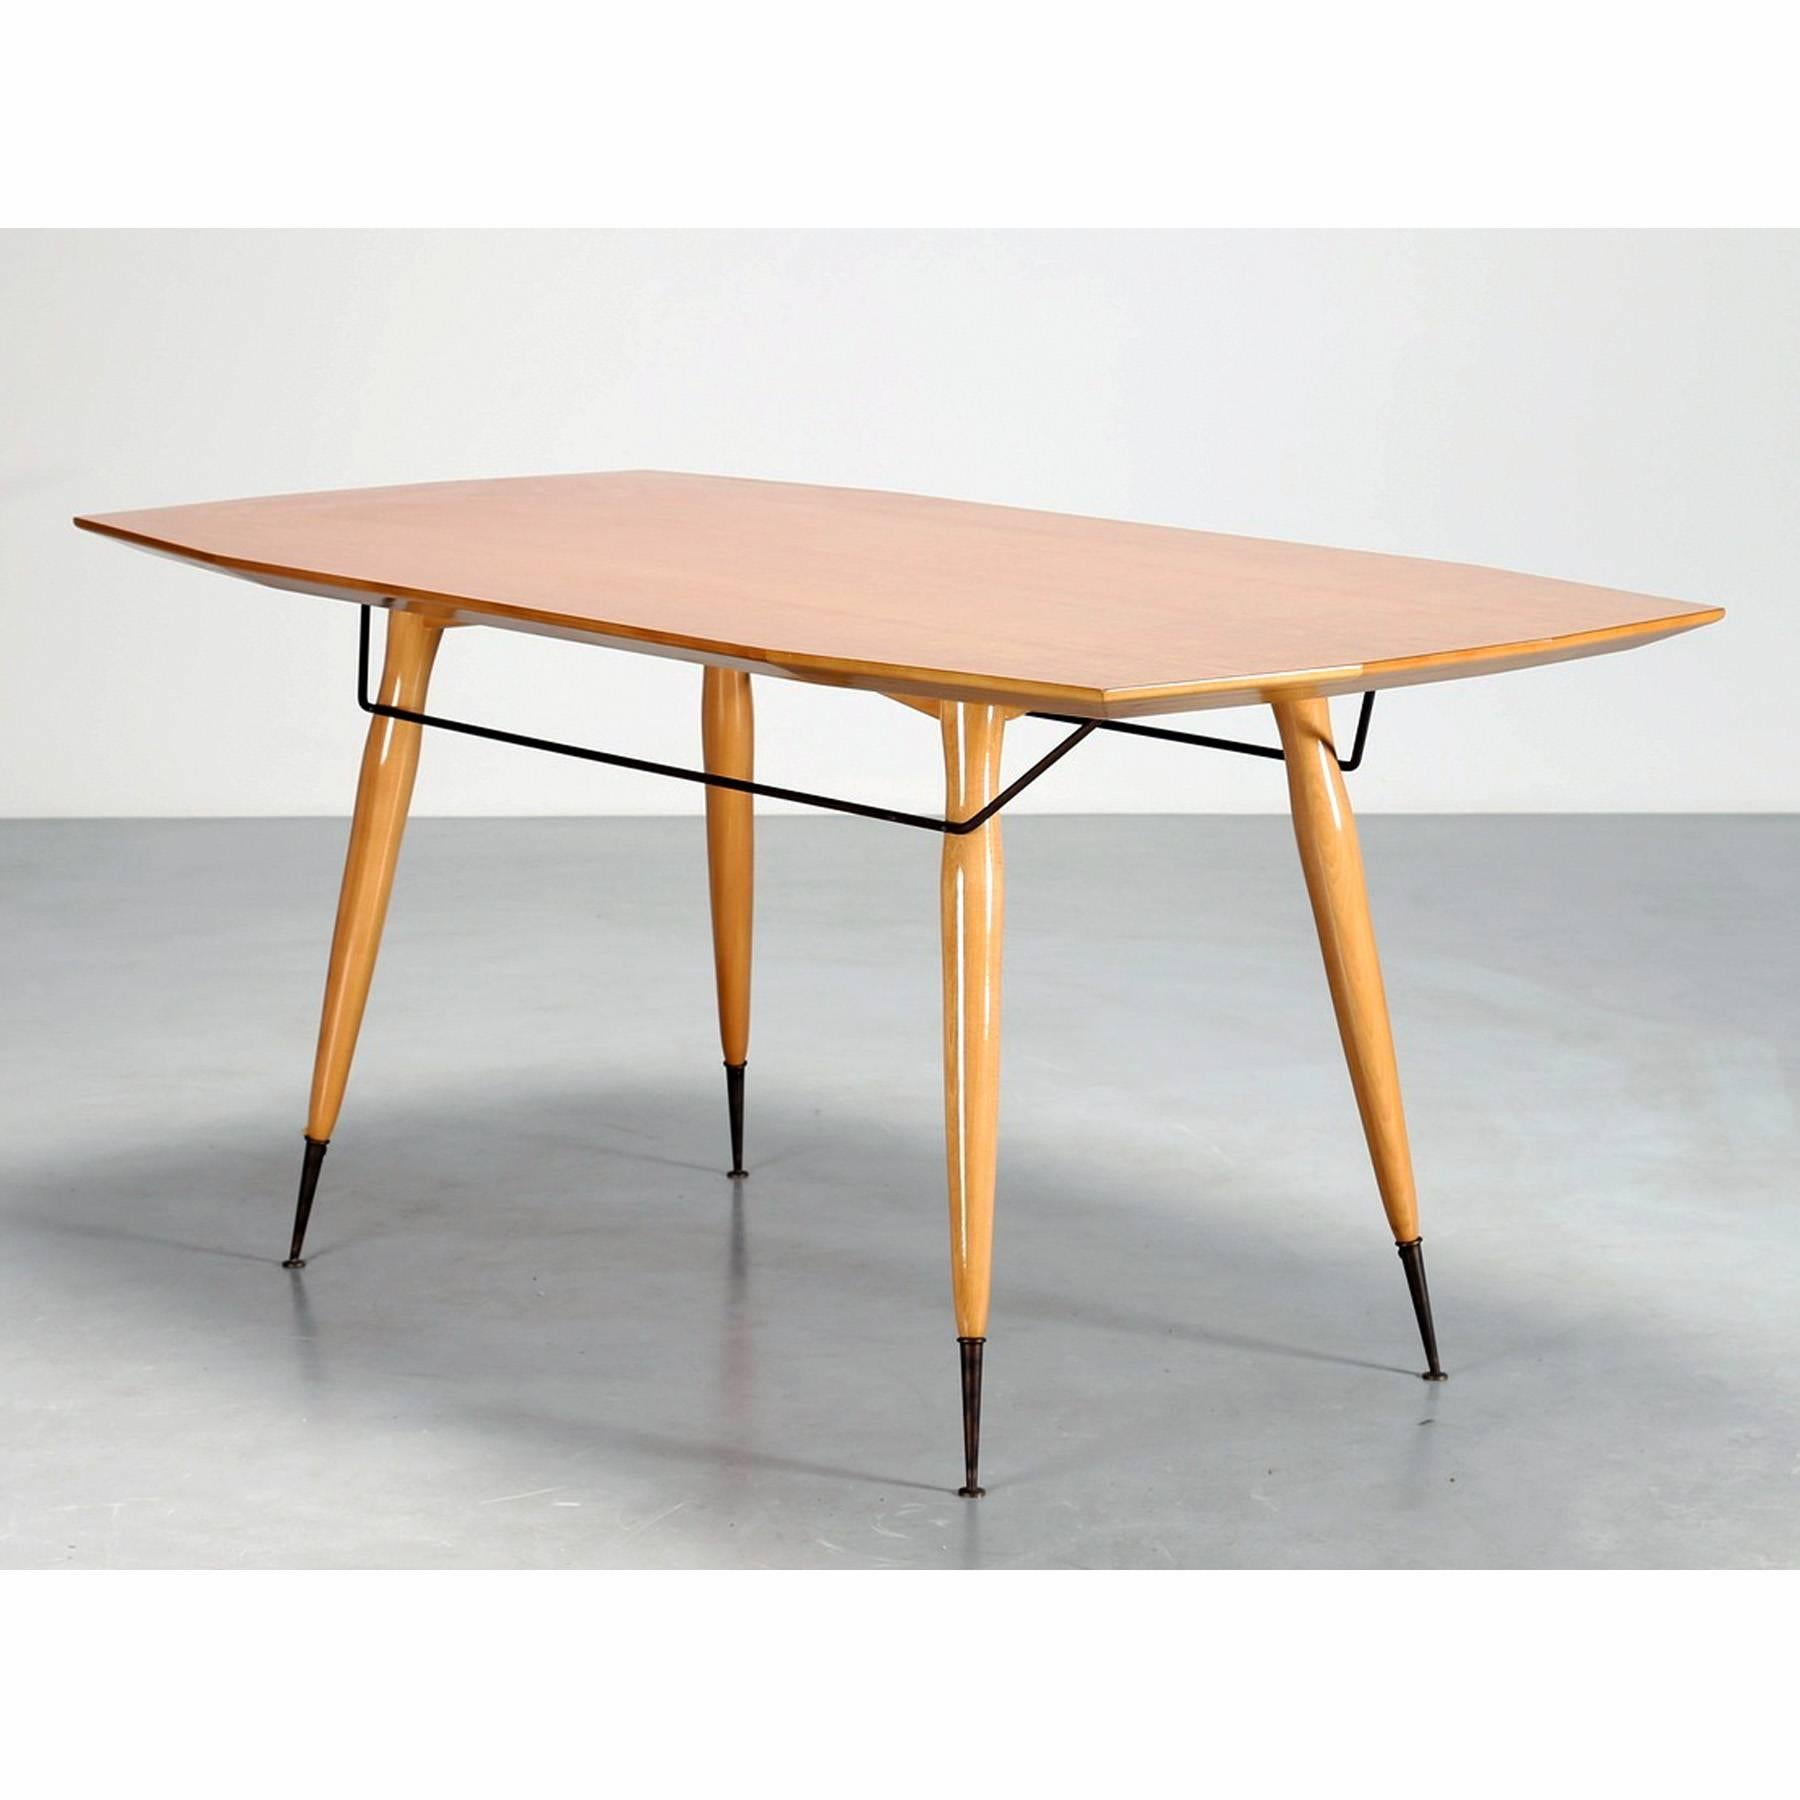 Amazing Italian Dining Table In Maple Of The 1950s, Characterized By A  Unique Sculptured Design